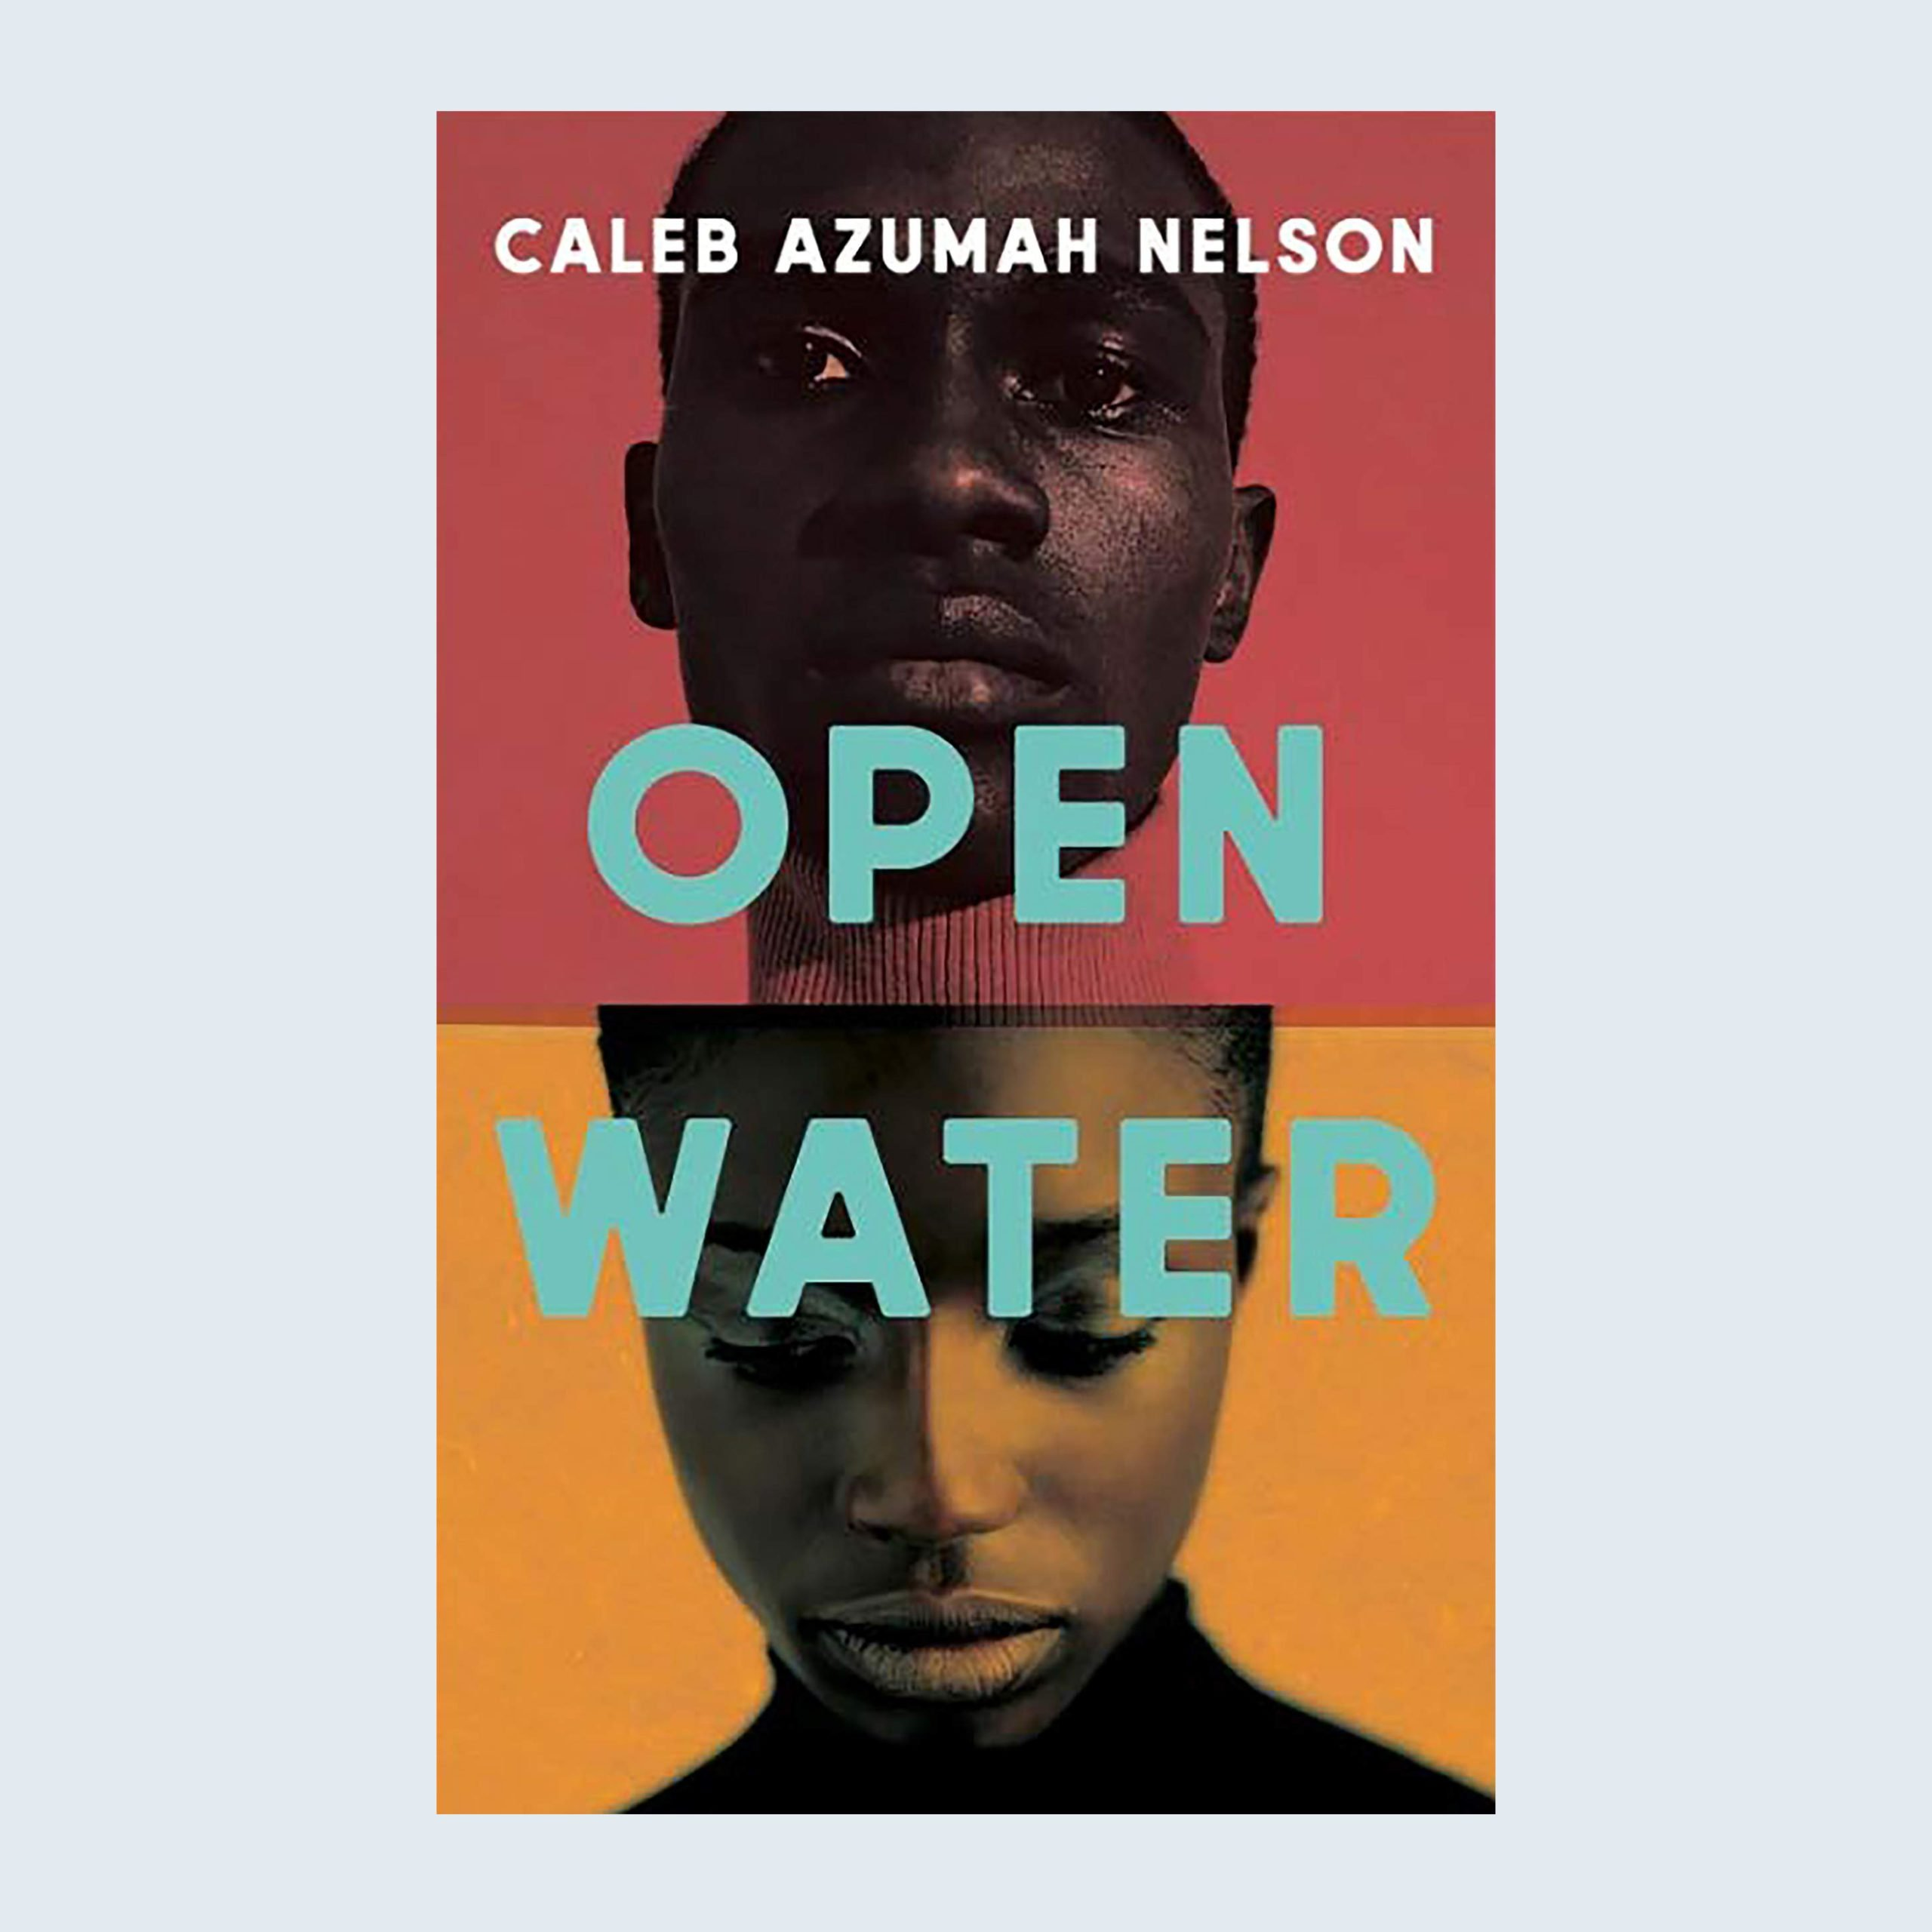 Open Water by Caleb Azumah Nelson